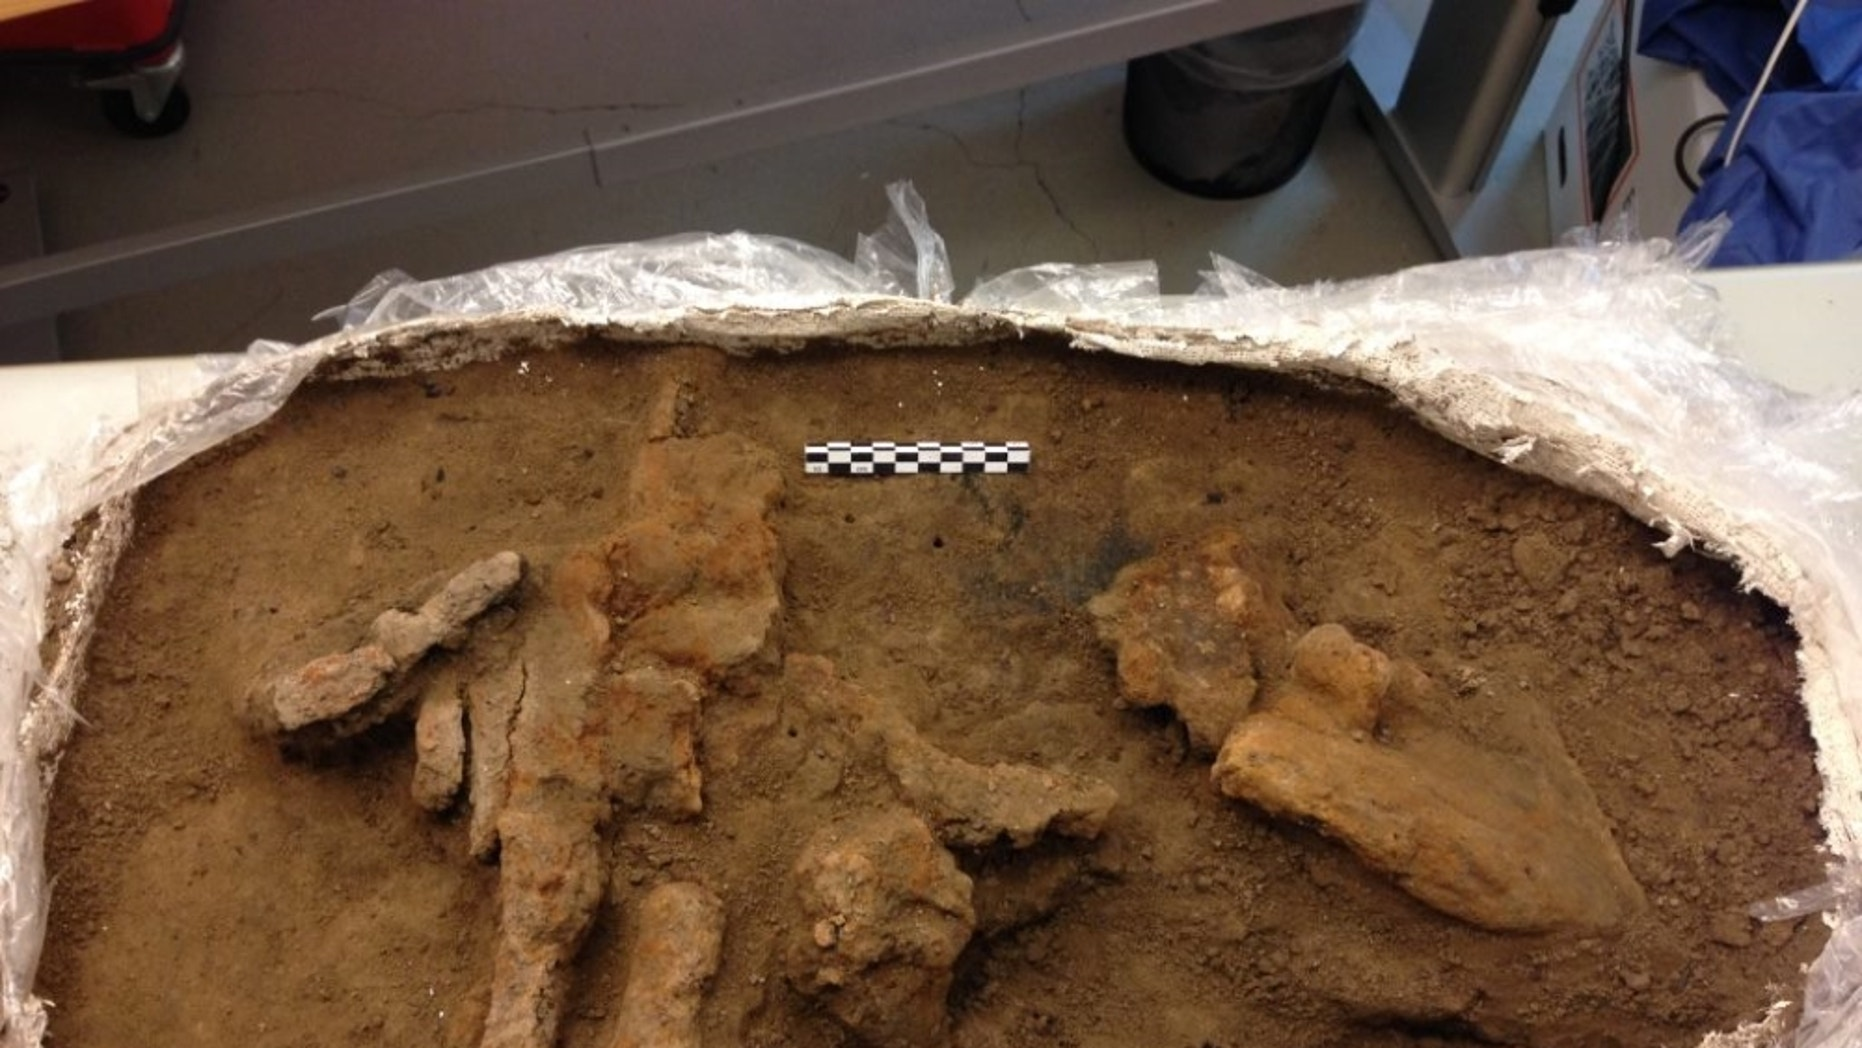 The remains of the toolbox were found in what archaeologists think was a workshop in the Viking fortress at Borgring.